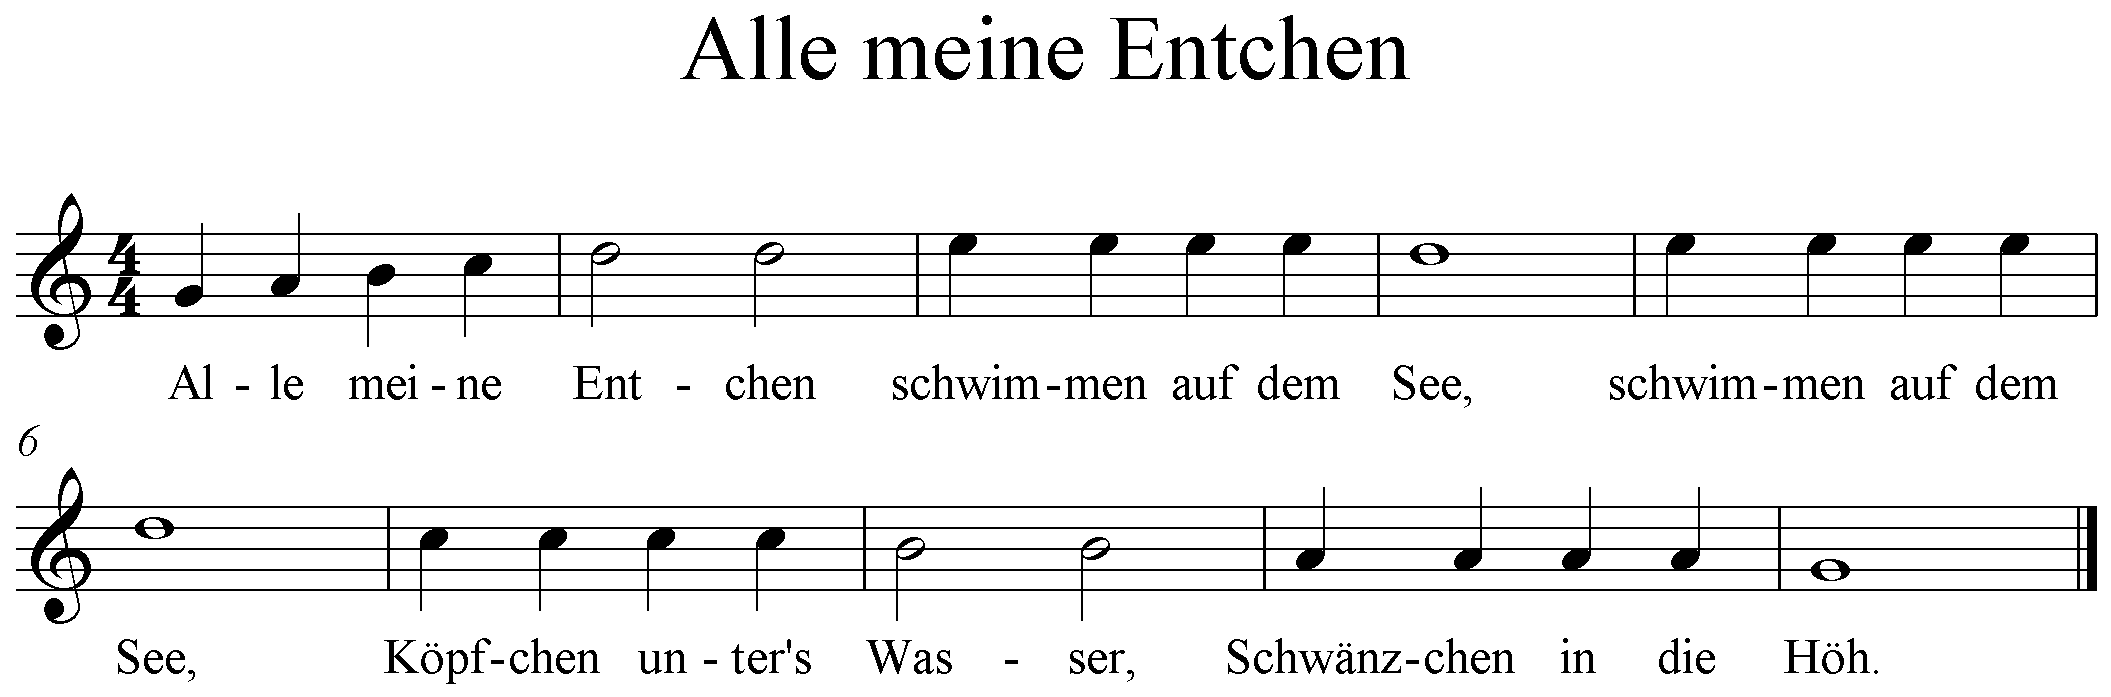 Alle meine Entchen G-Dur, G-Major, Noten